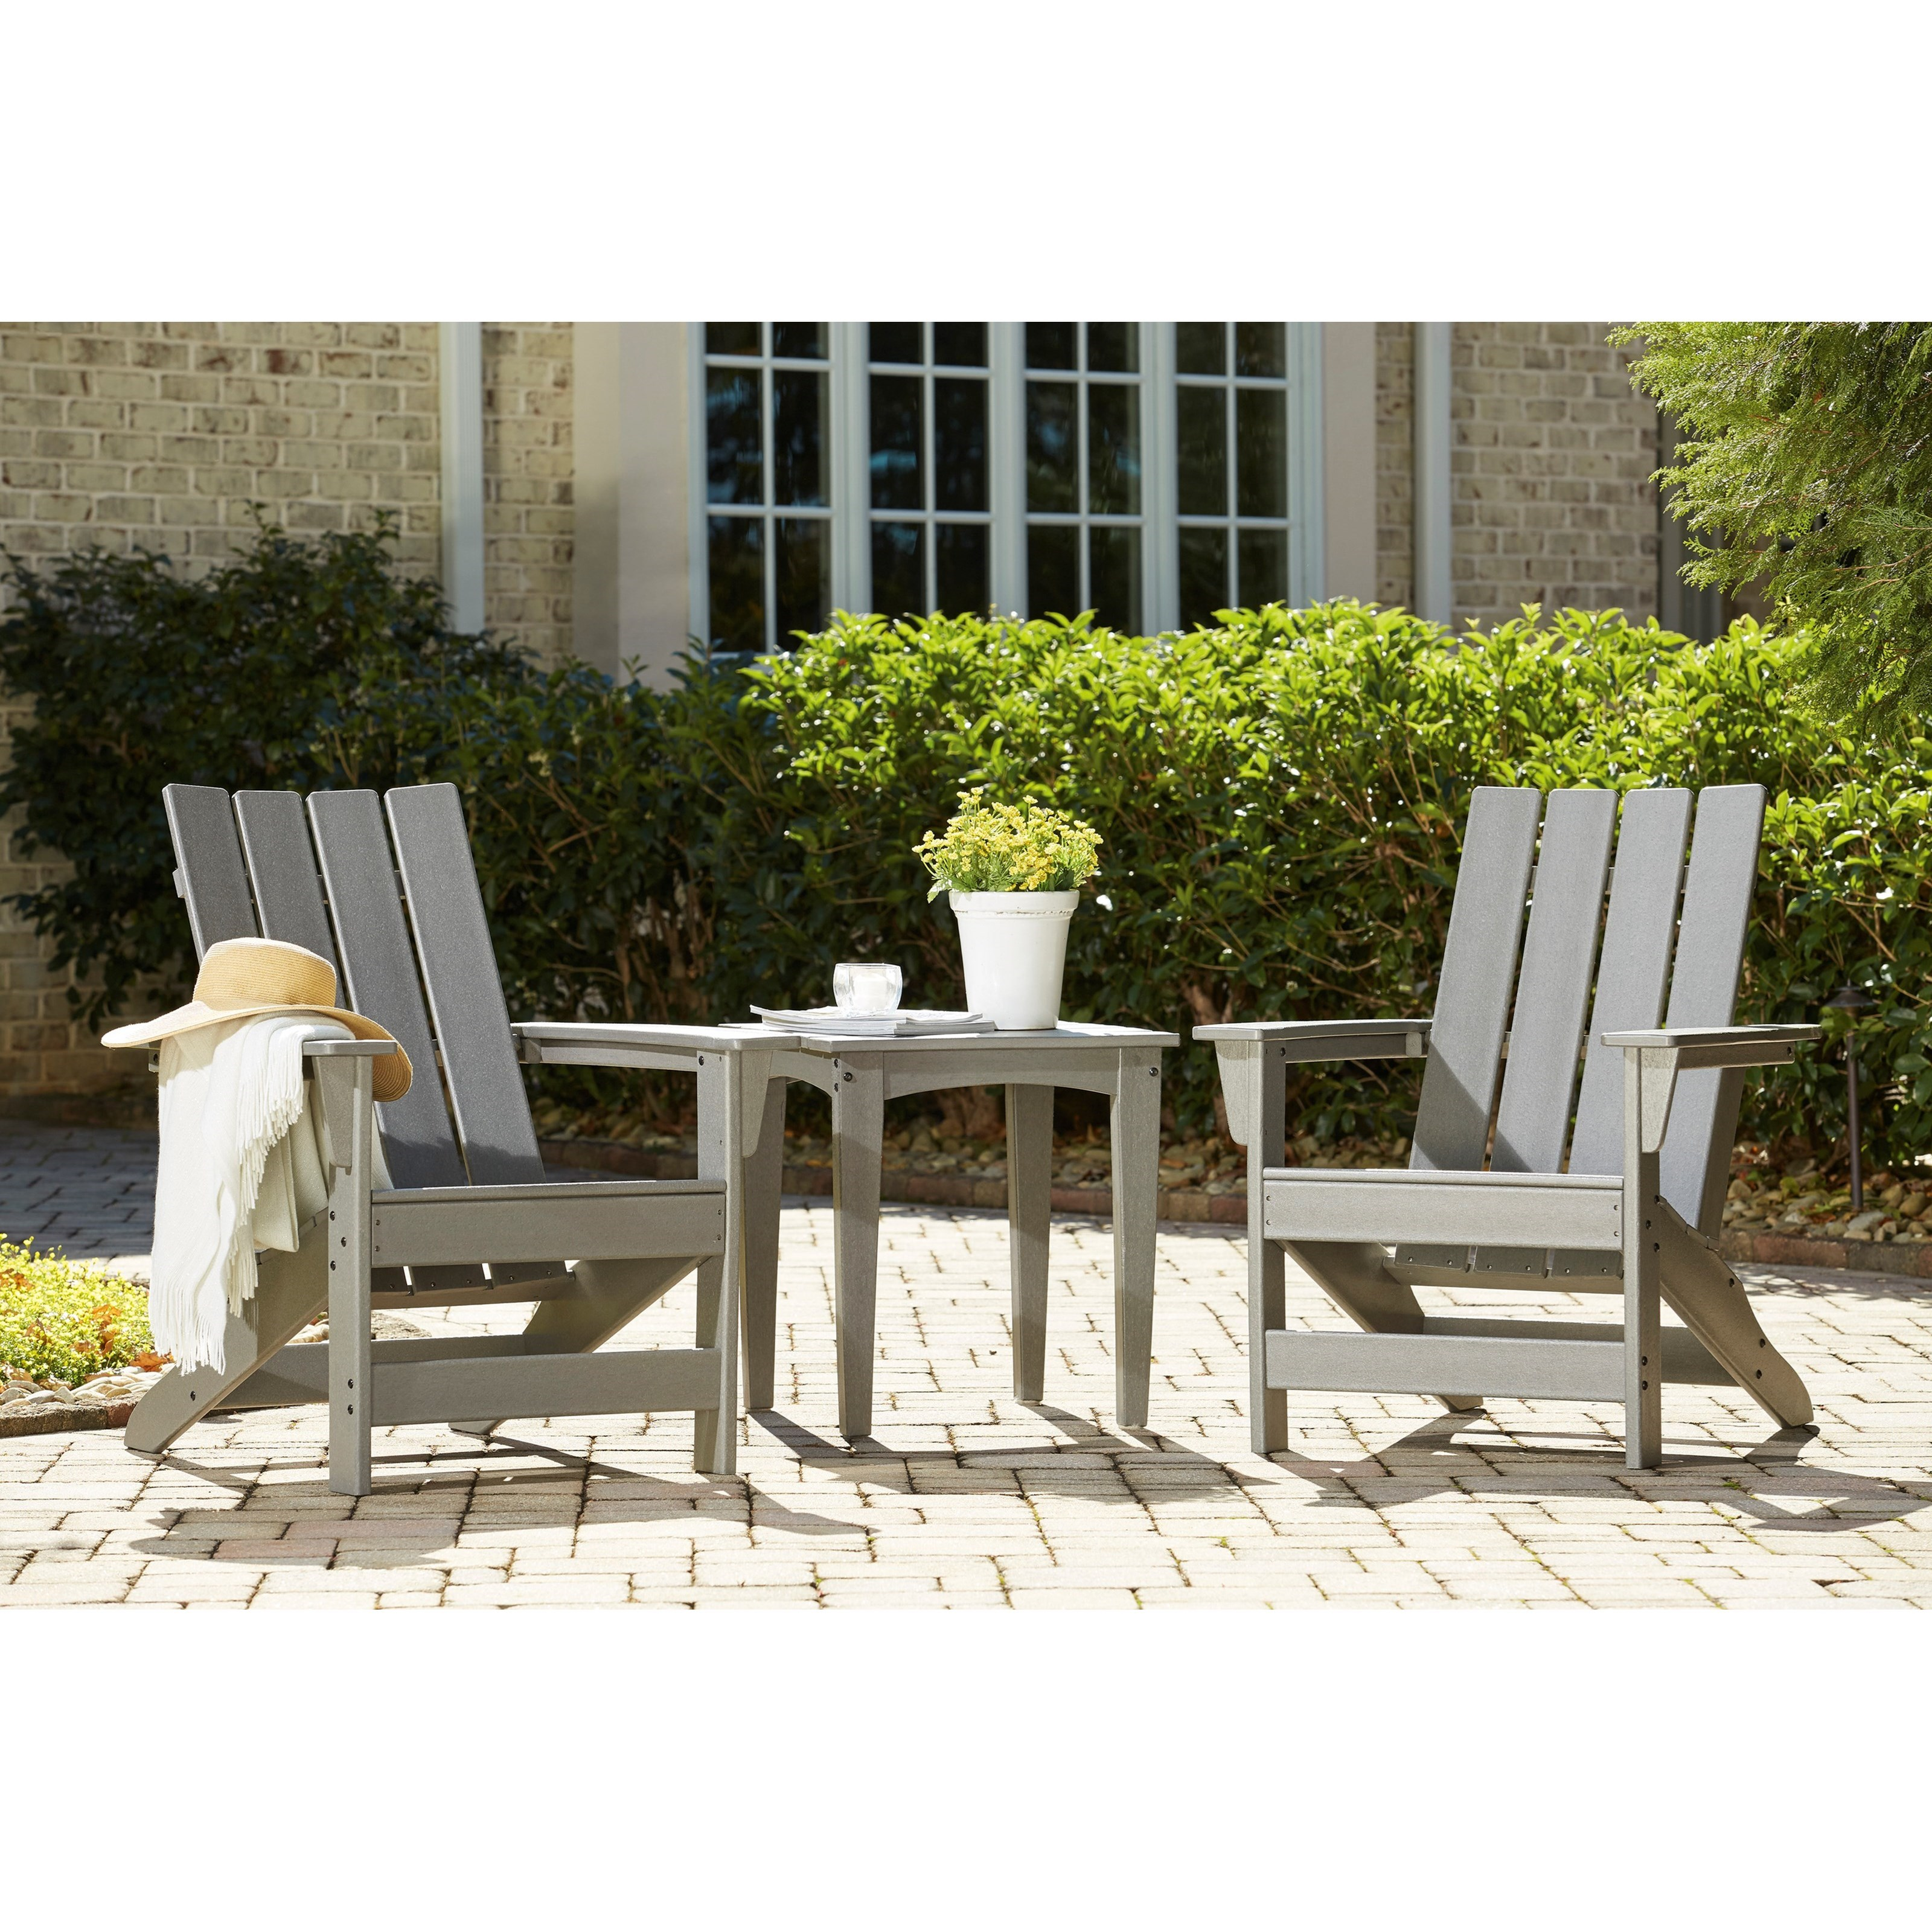 Visola 3-Piece Adirondack Chairs and Table Set by Signature Design by Ashley at Value City Furniture